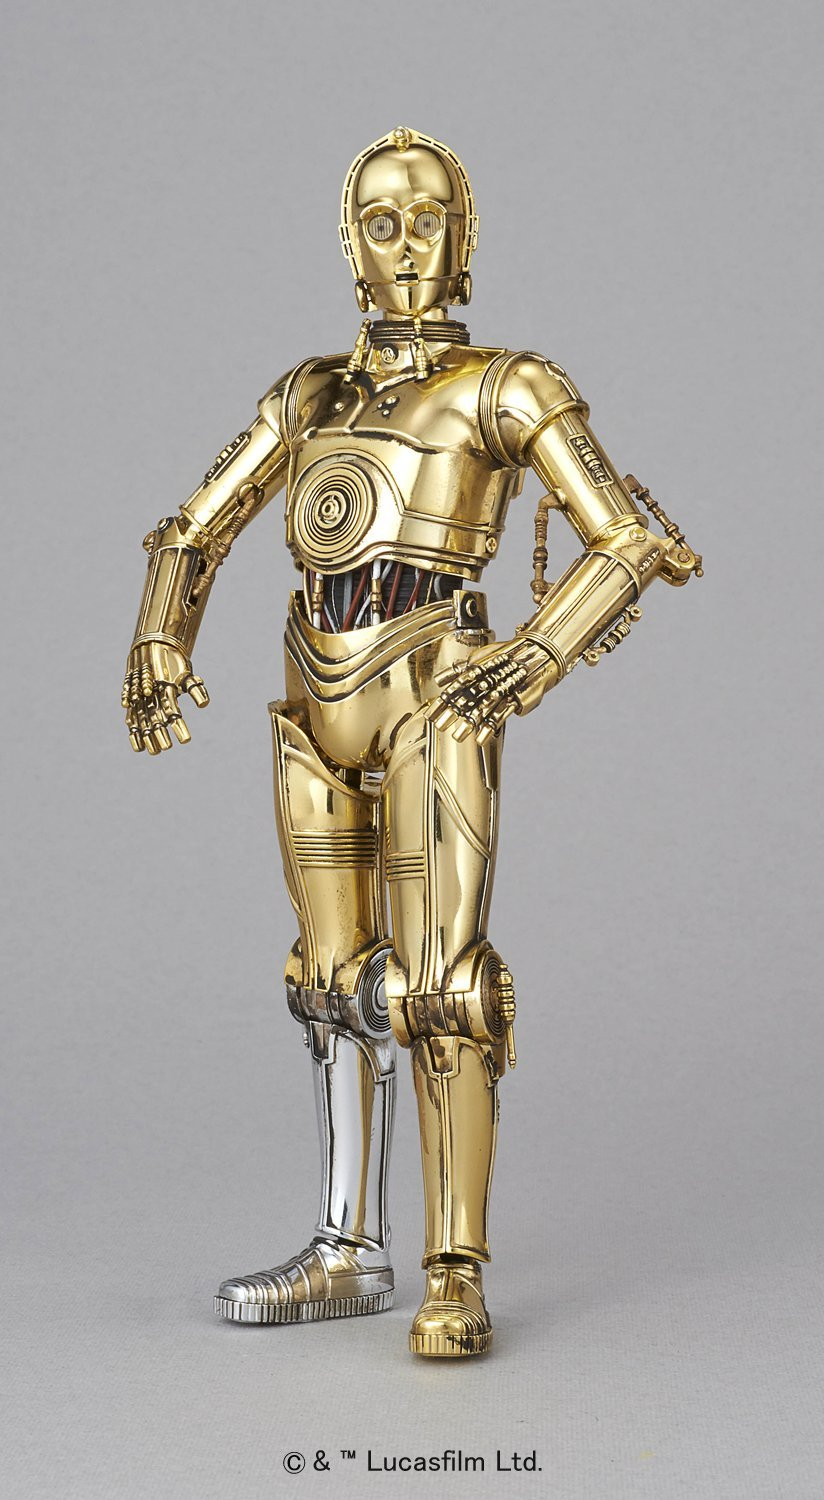 Bandai Star Wars C-3PO 1/12 Plastic Model